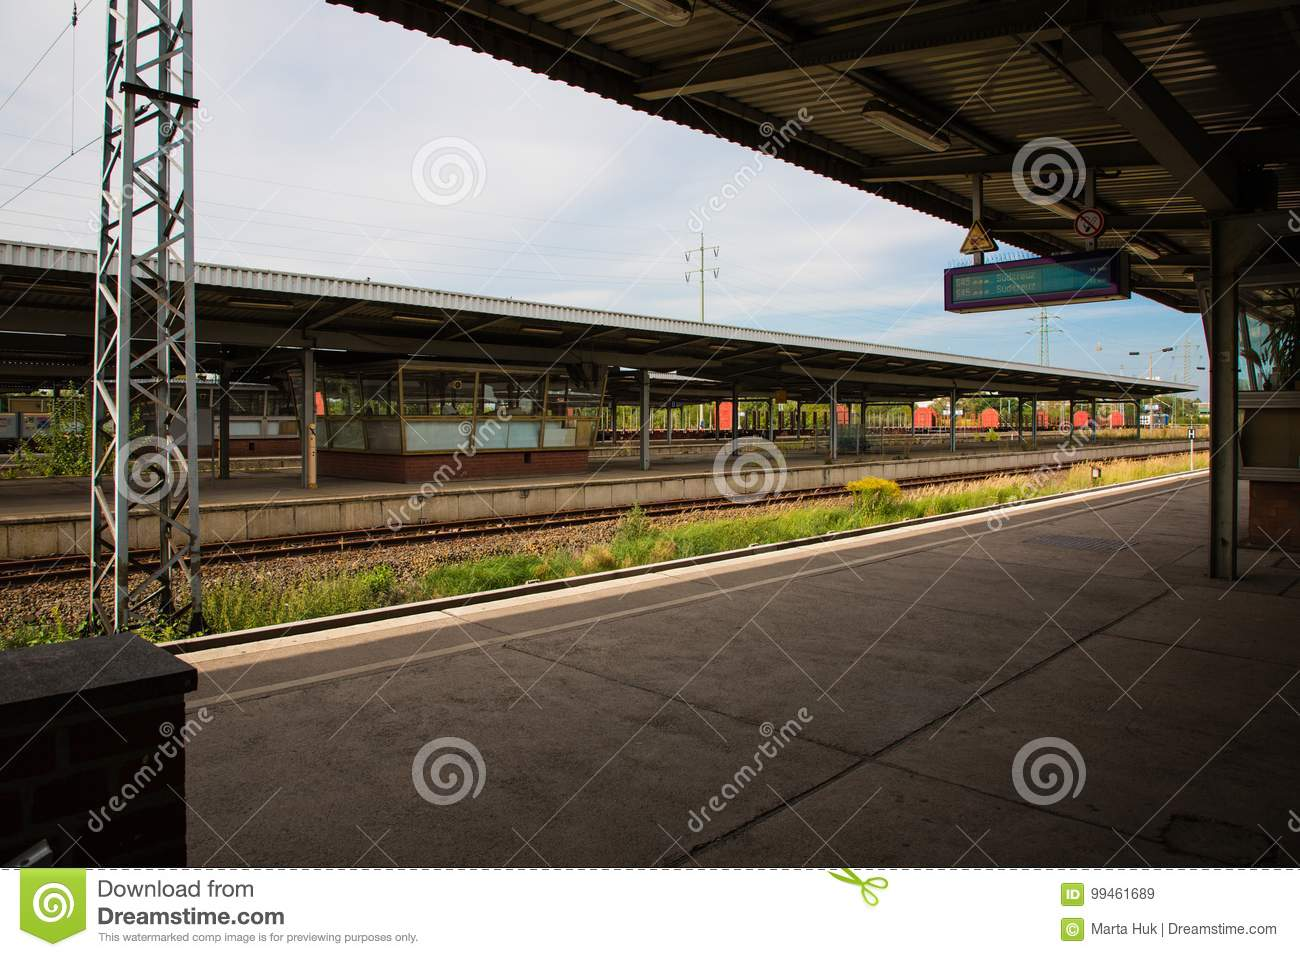 Platform of railway station in Berlin, Germany